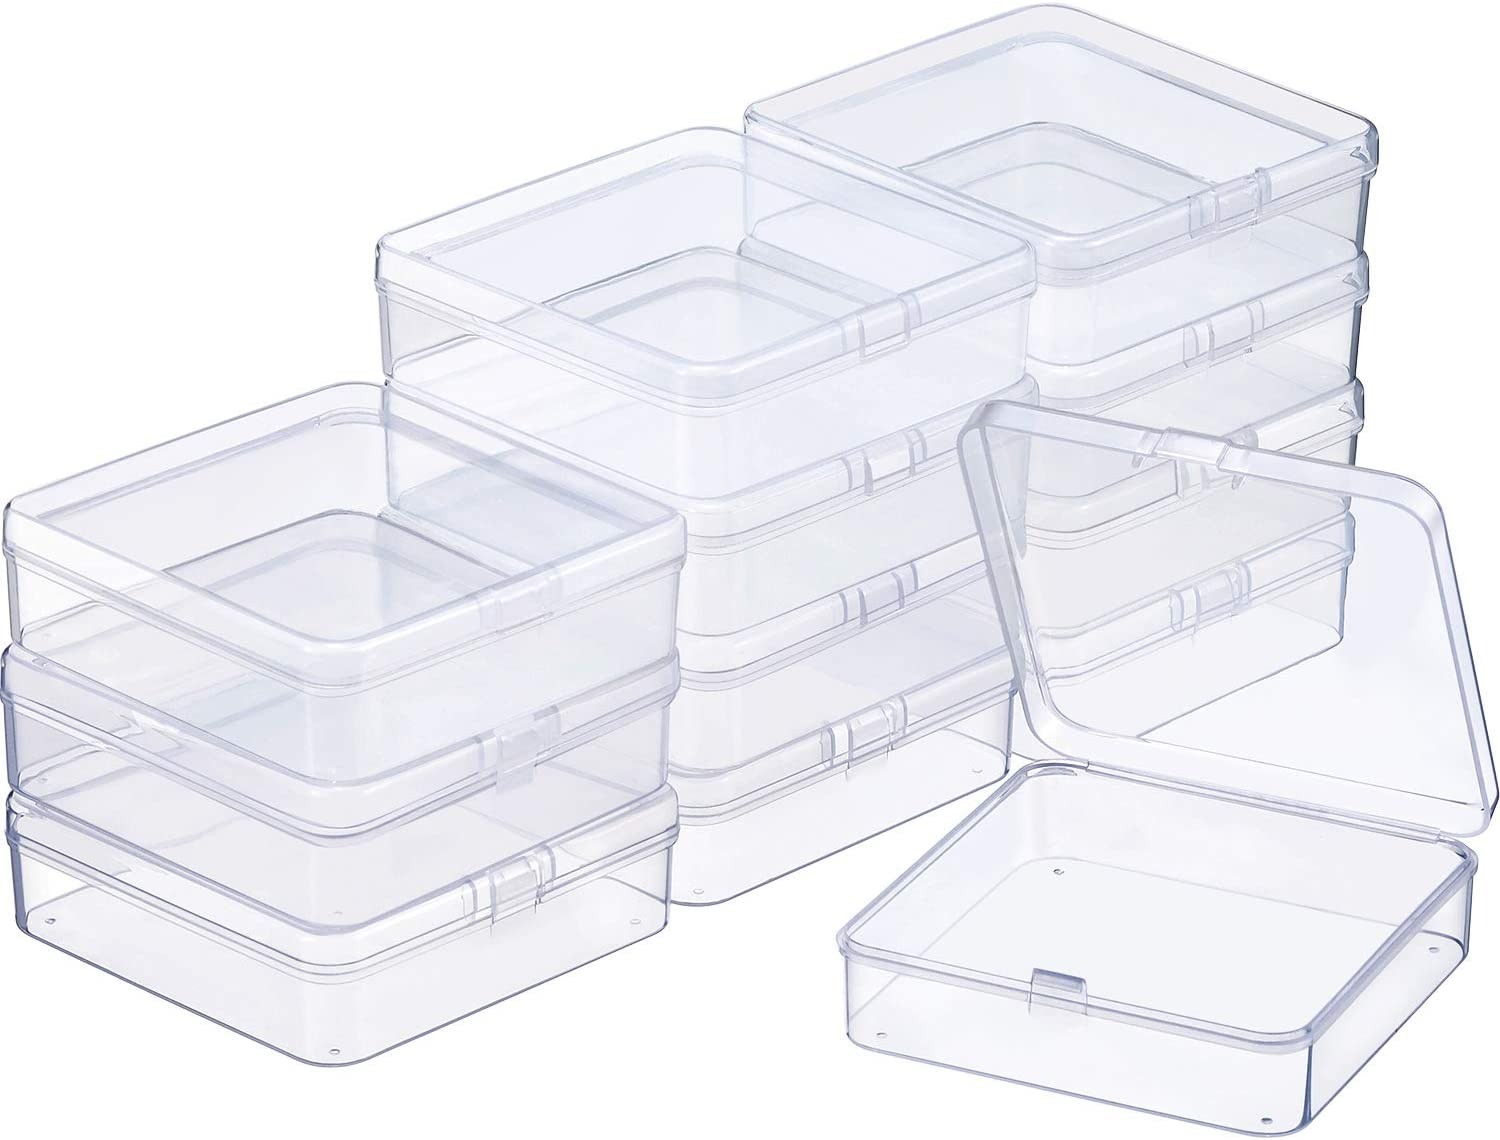 24 Packs Small Clear Plastic Beads Storage Containers Box with Hinged Lid for Storage of Small Items Hardware Jewelry 2.12 x 2.12 x 0.79 Inches Crafts